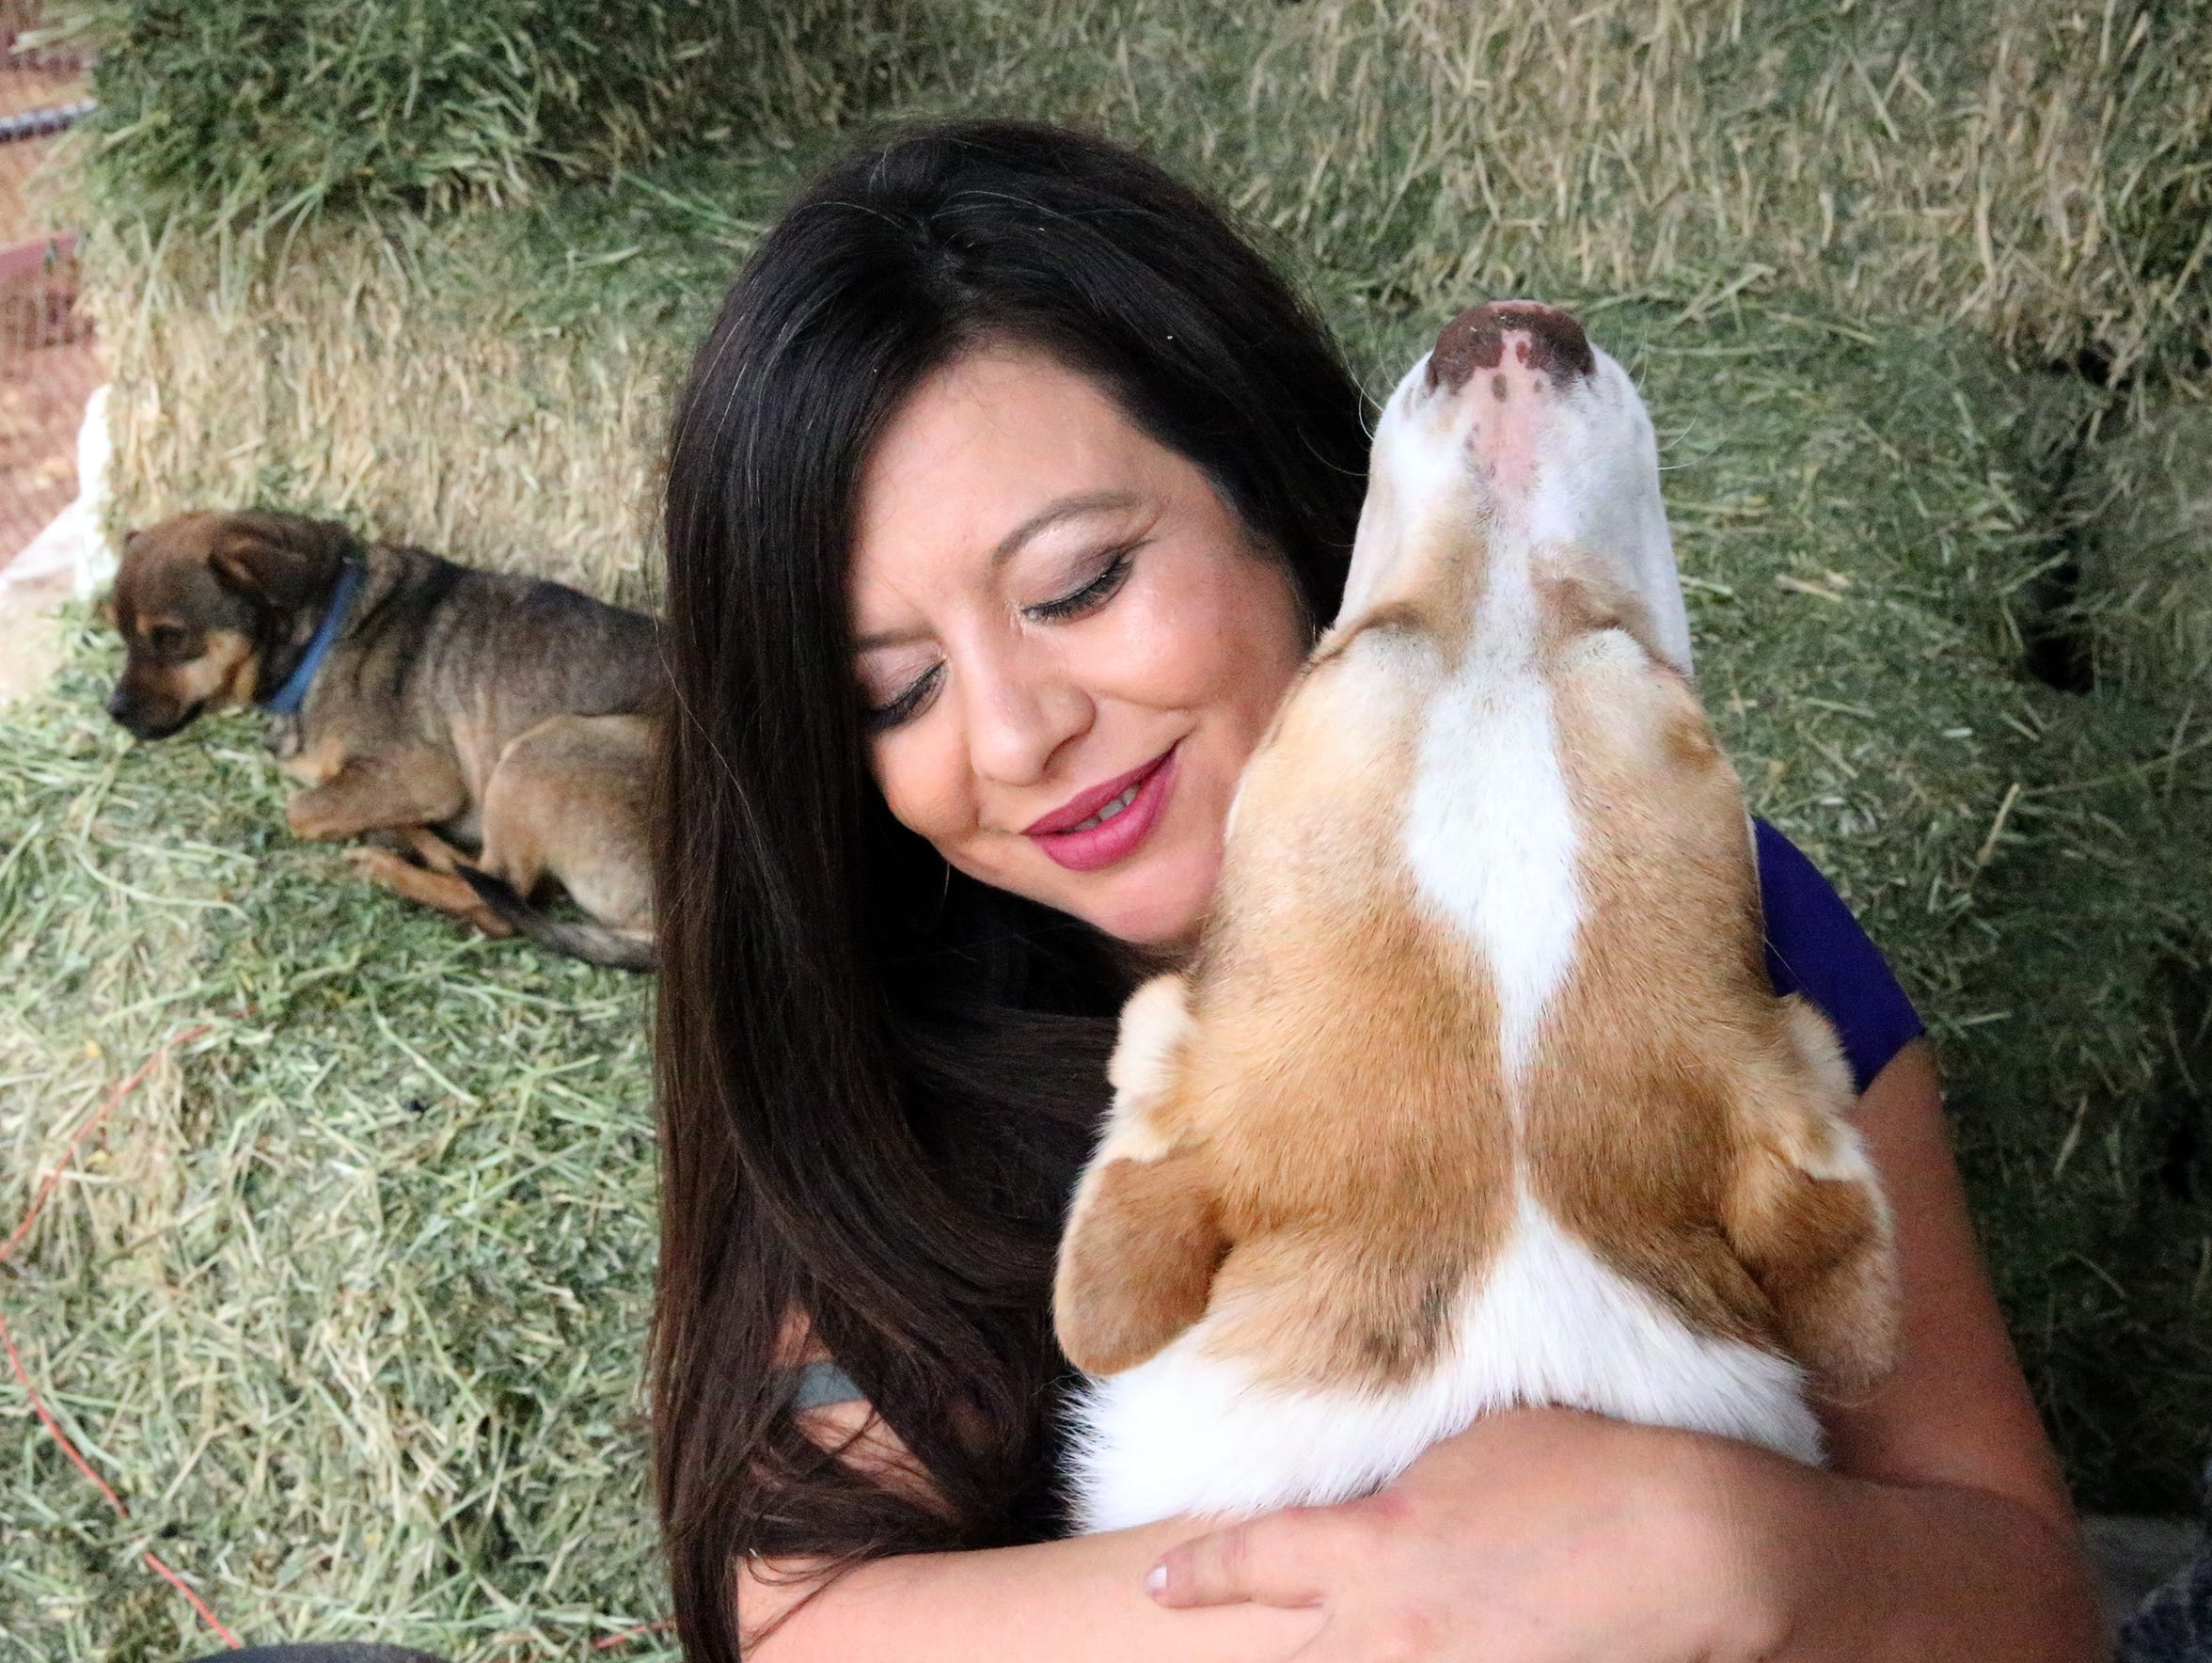 State Rep. Mary Gonzalez cuddles with Goat, one of